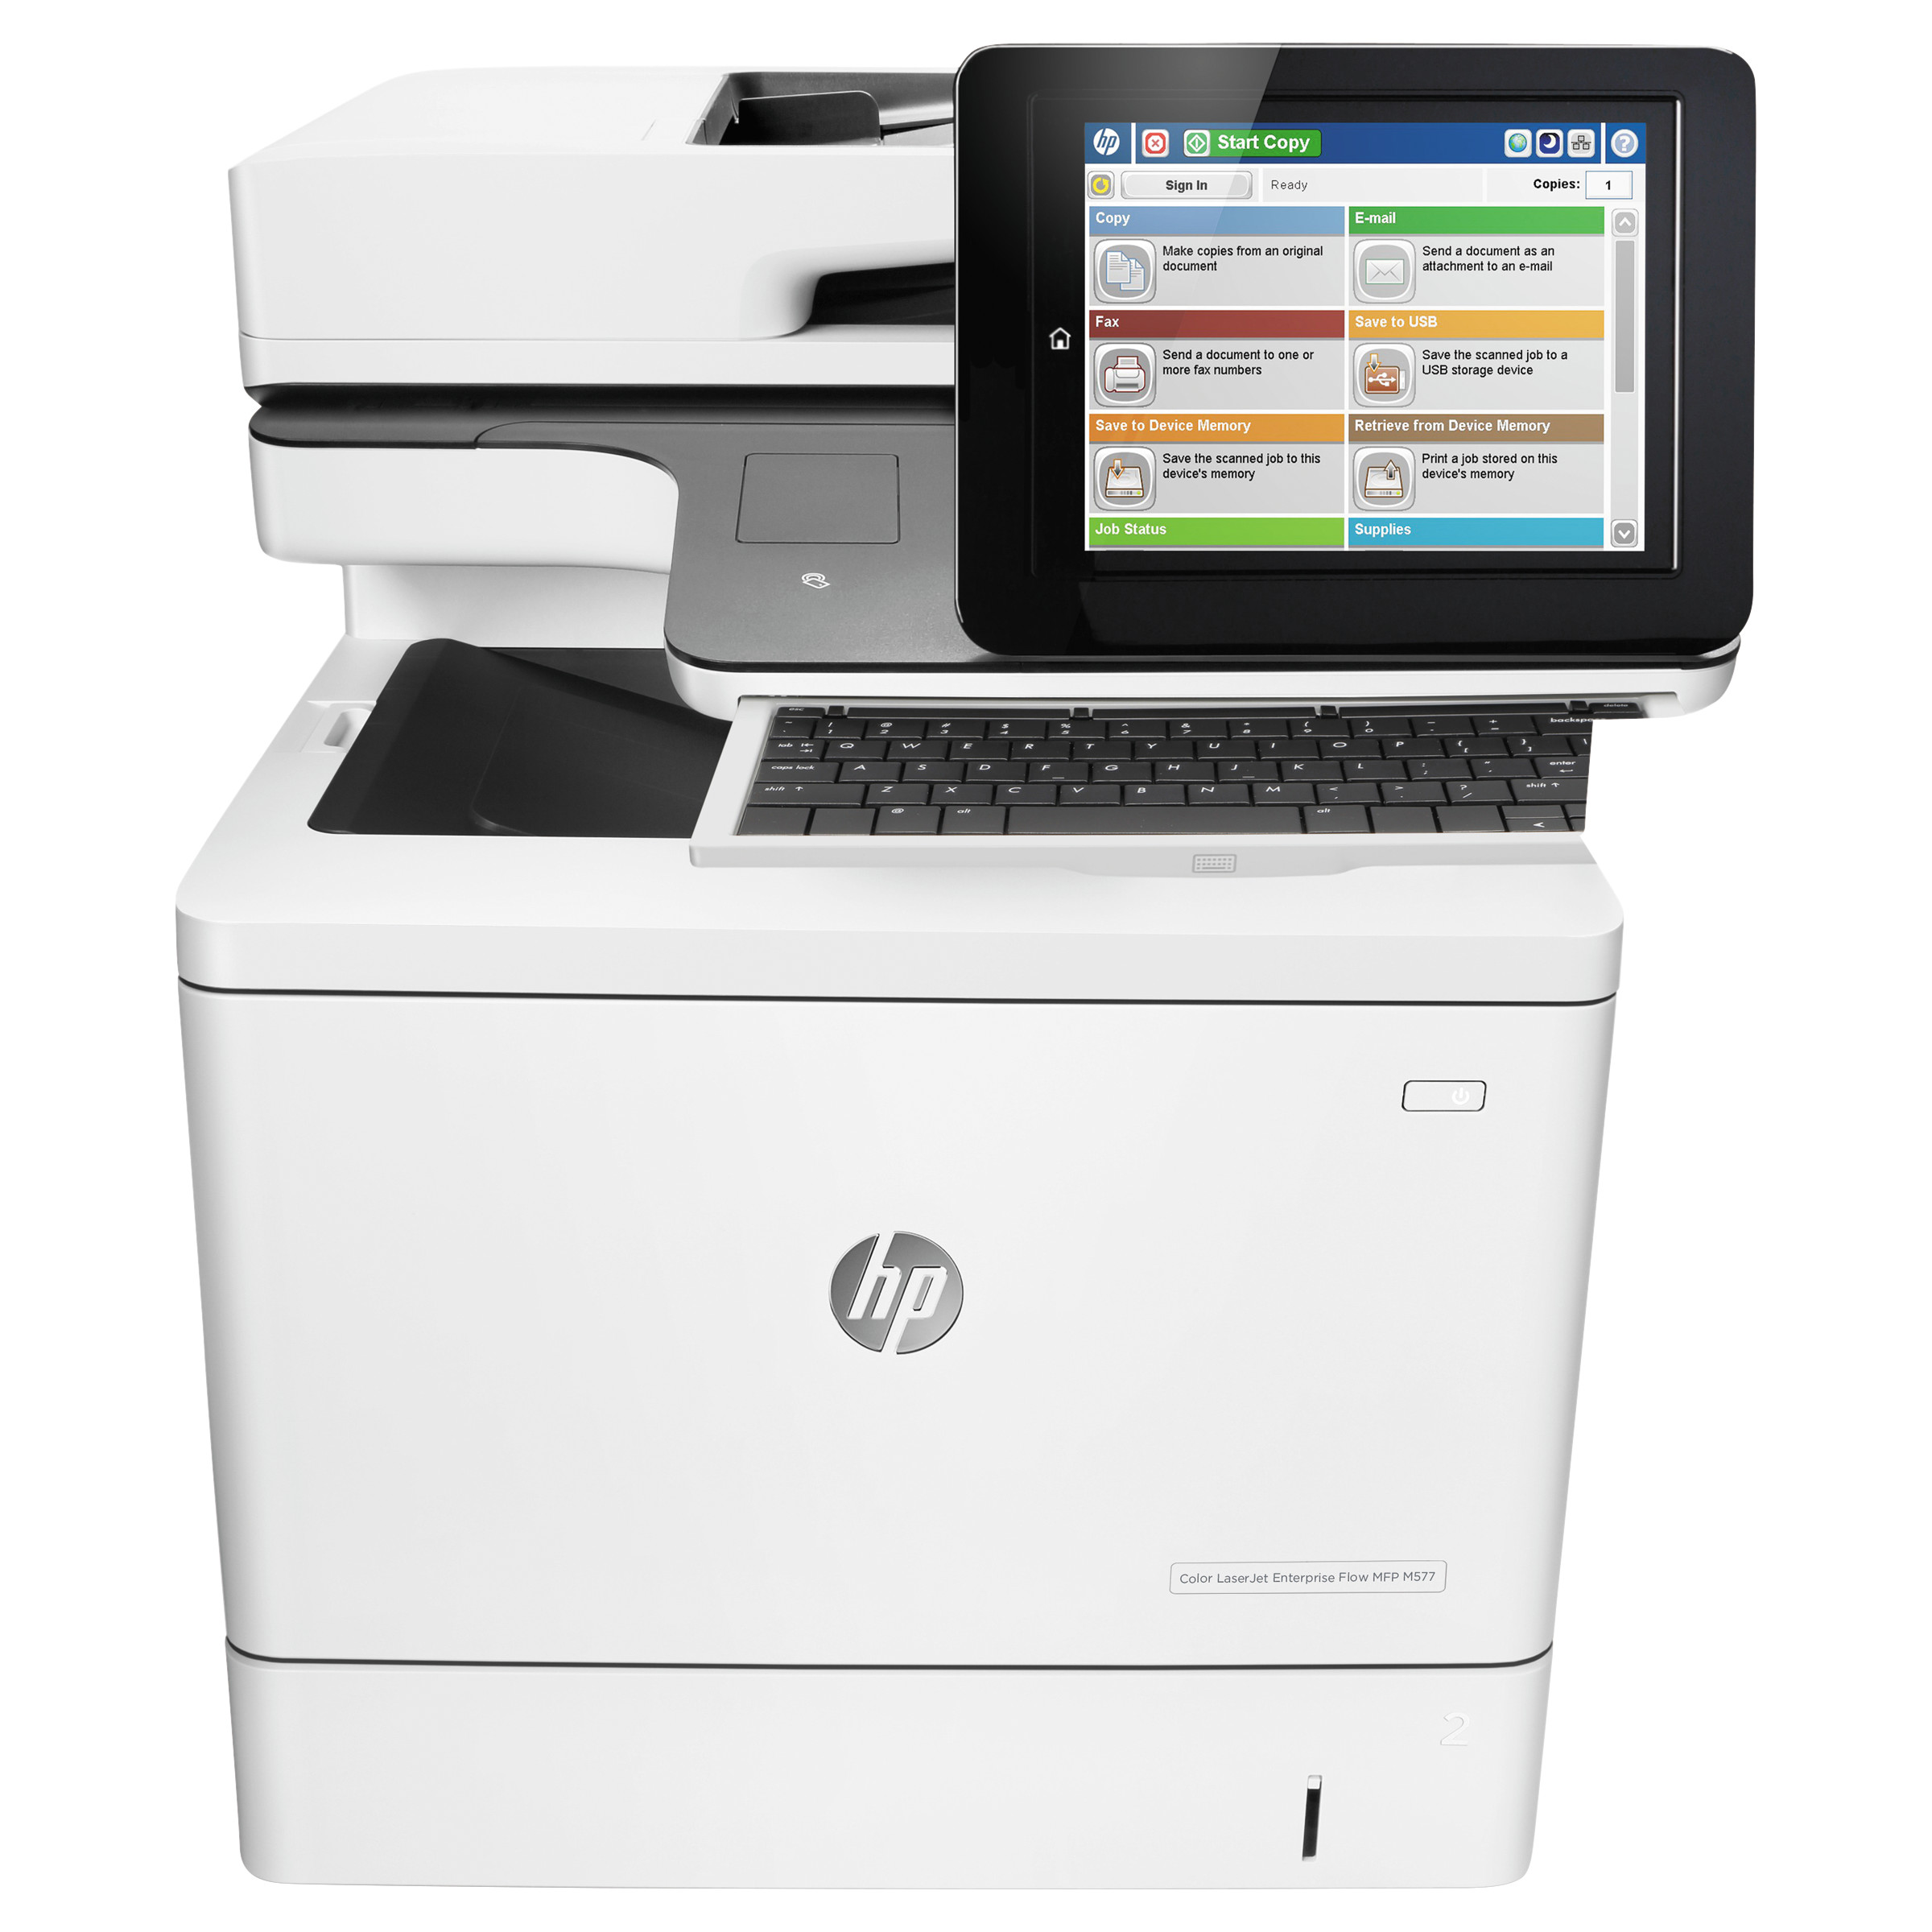 HP Color LaserJet Enterprise Flow MFP M577z Wireless Printer, Copy Fax Print Scan by HP